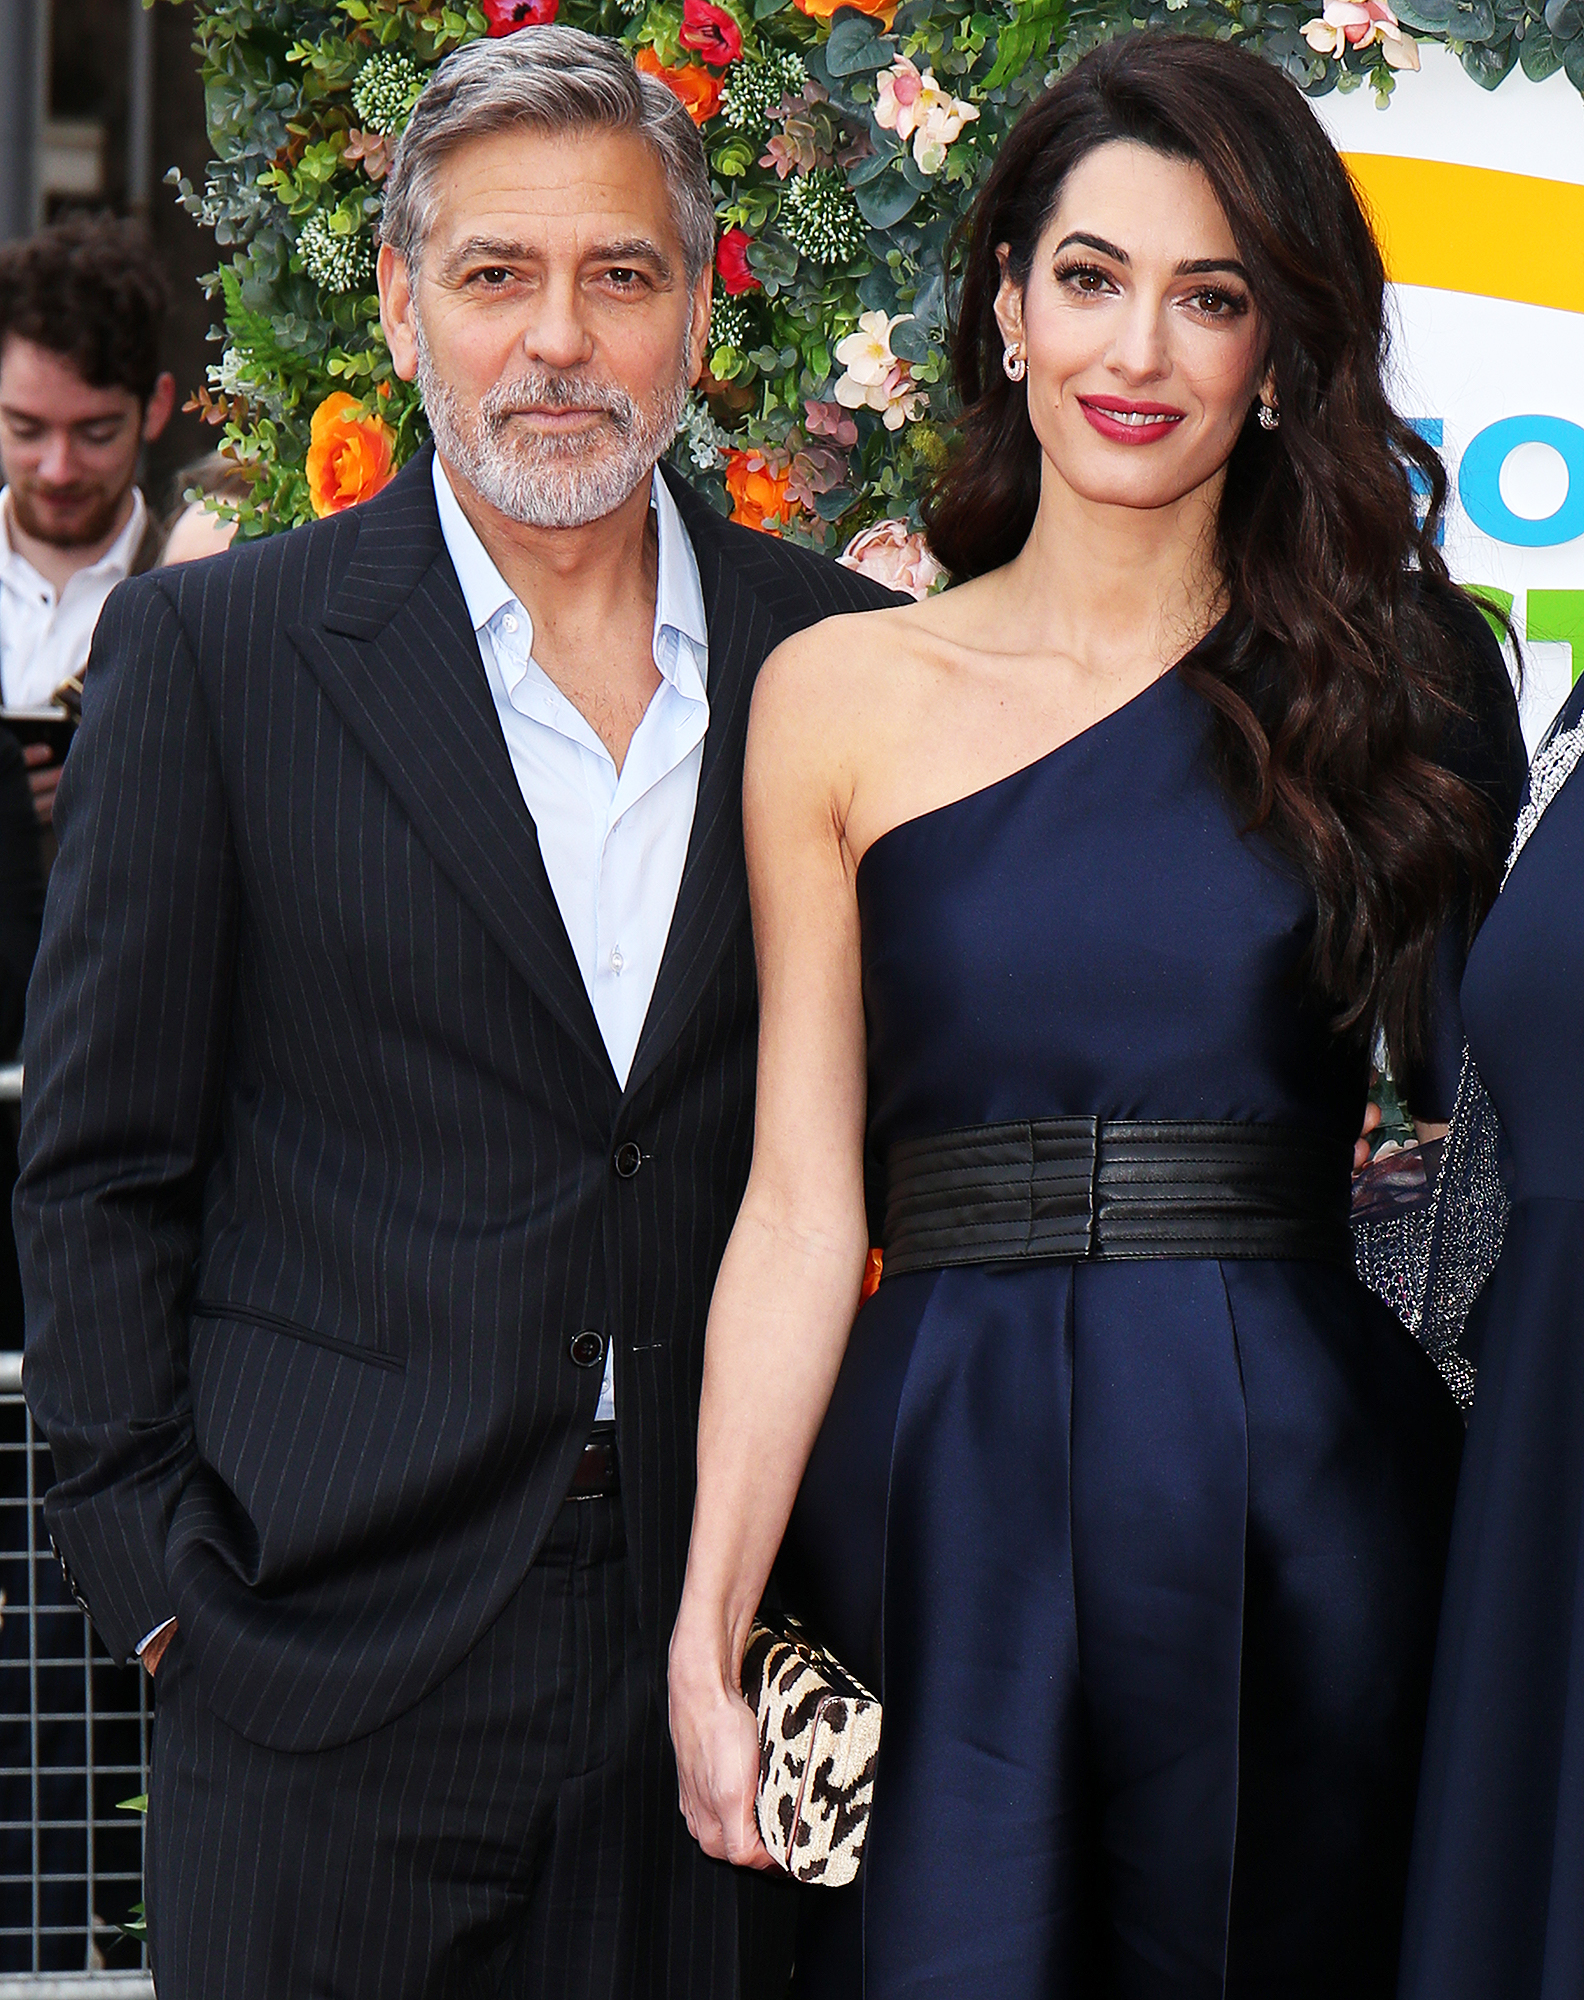 George Clooney Says Amal Clooney Doesn't Like His 'ER' Character